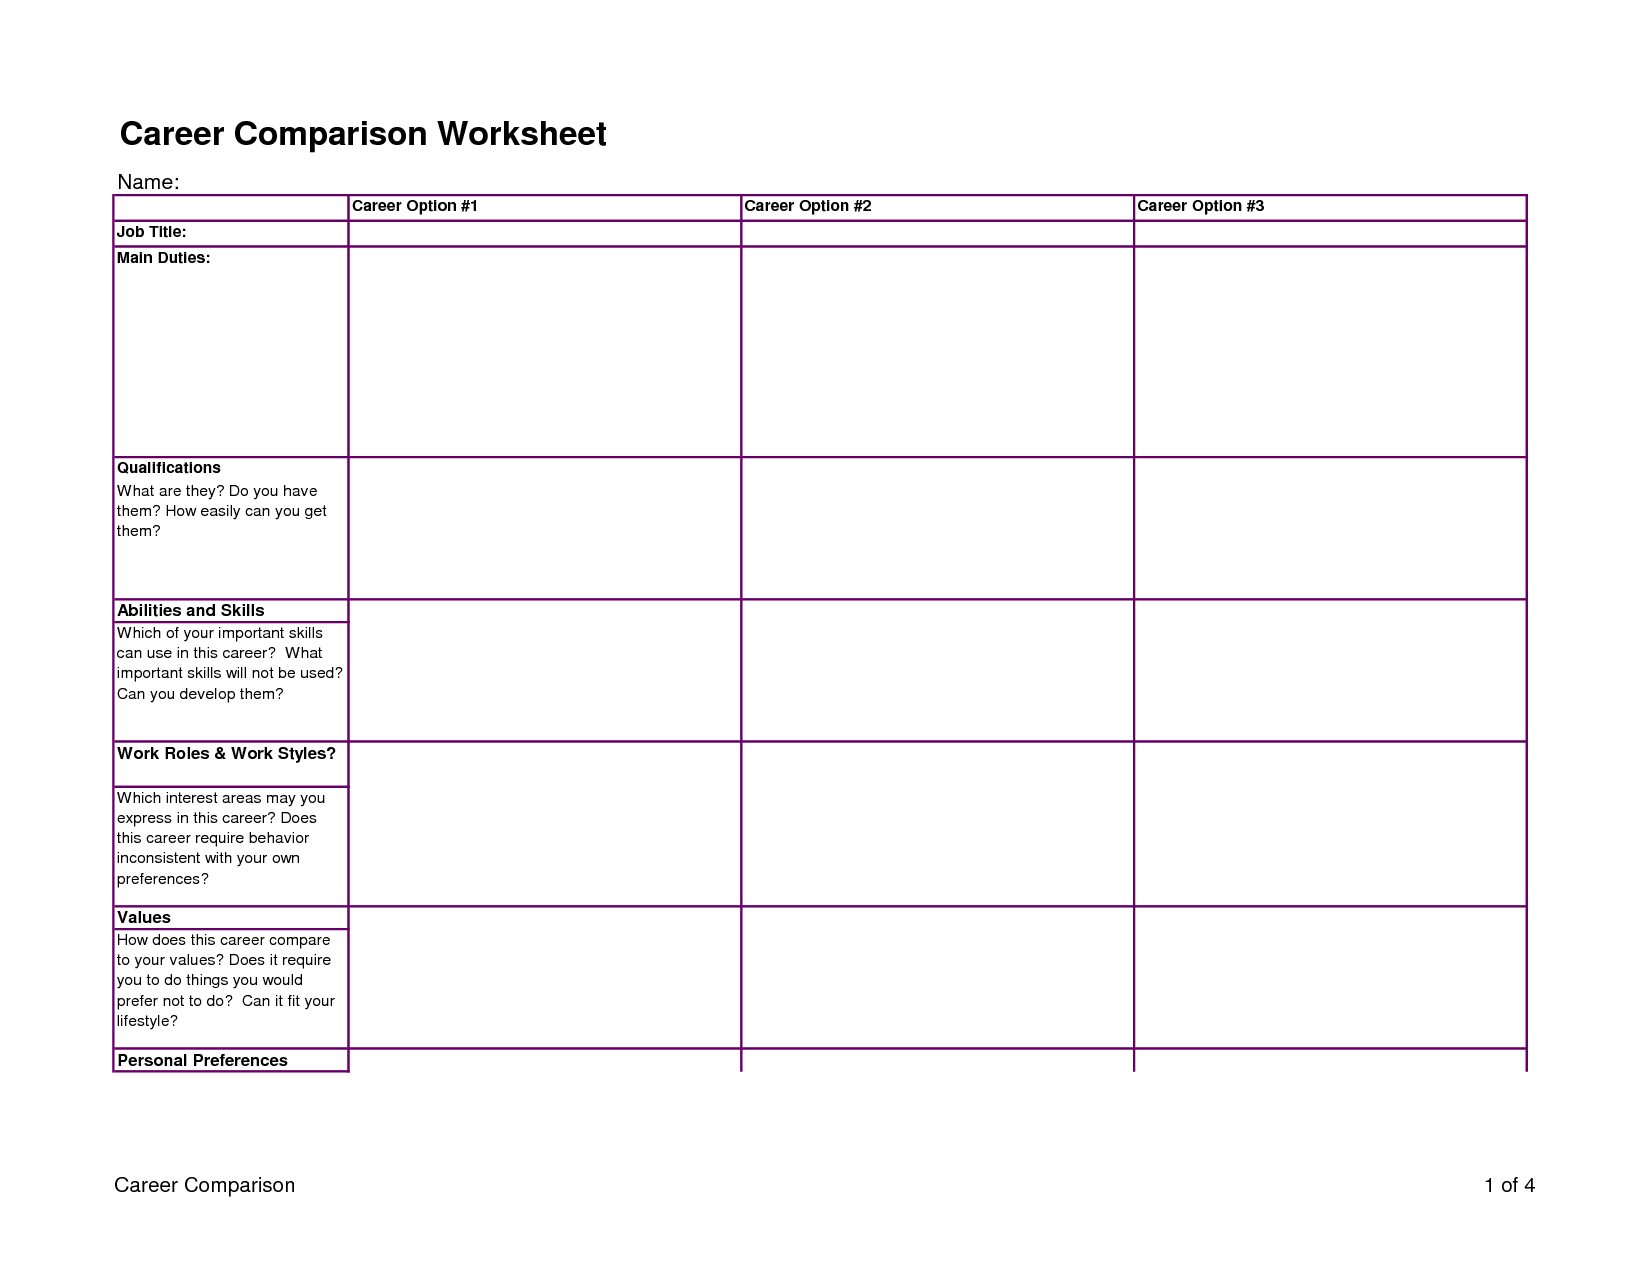 Career Comparison Worksheet